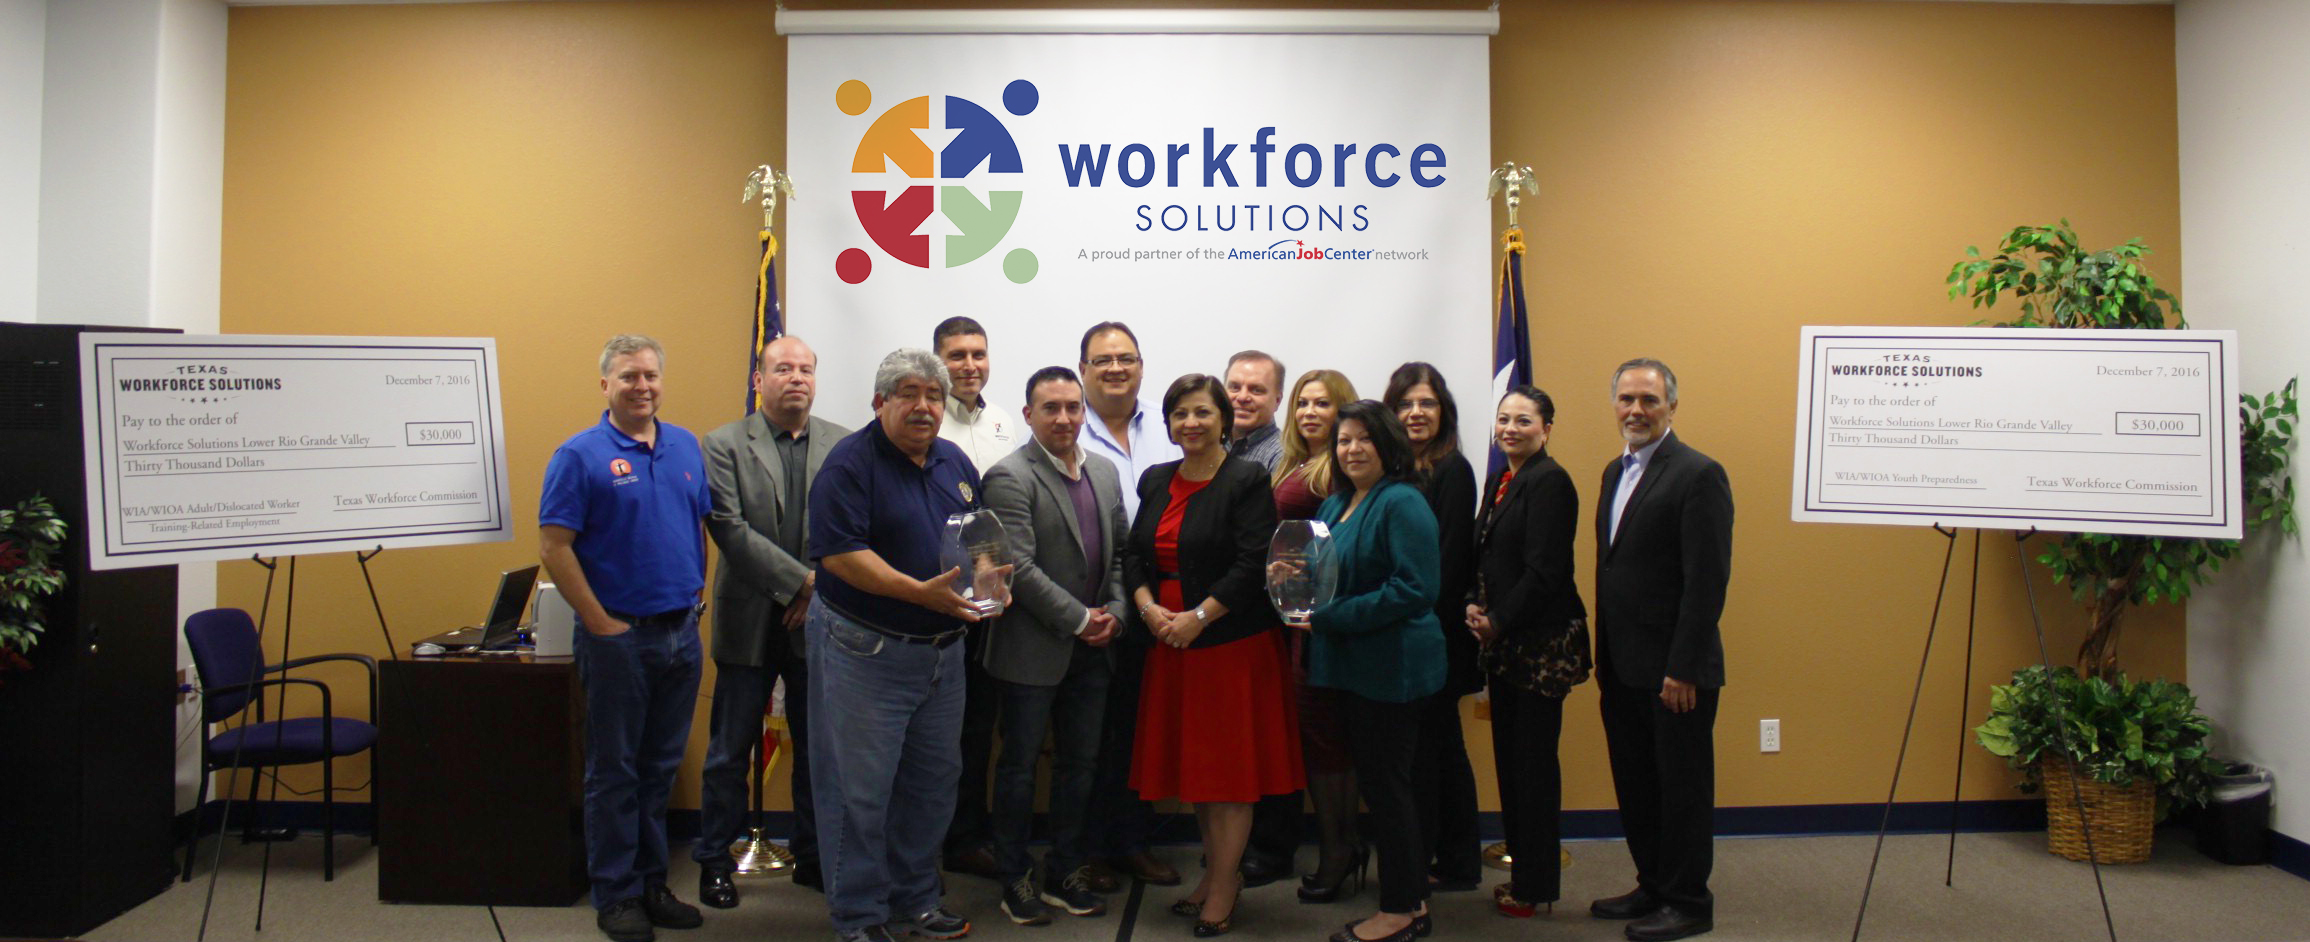 Workforce Solutions Newsroom Archive